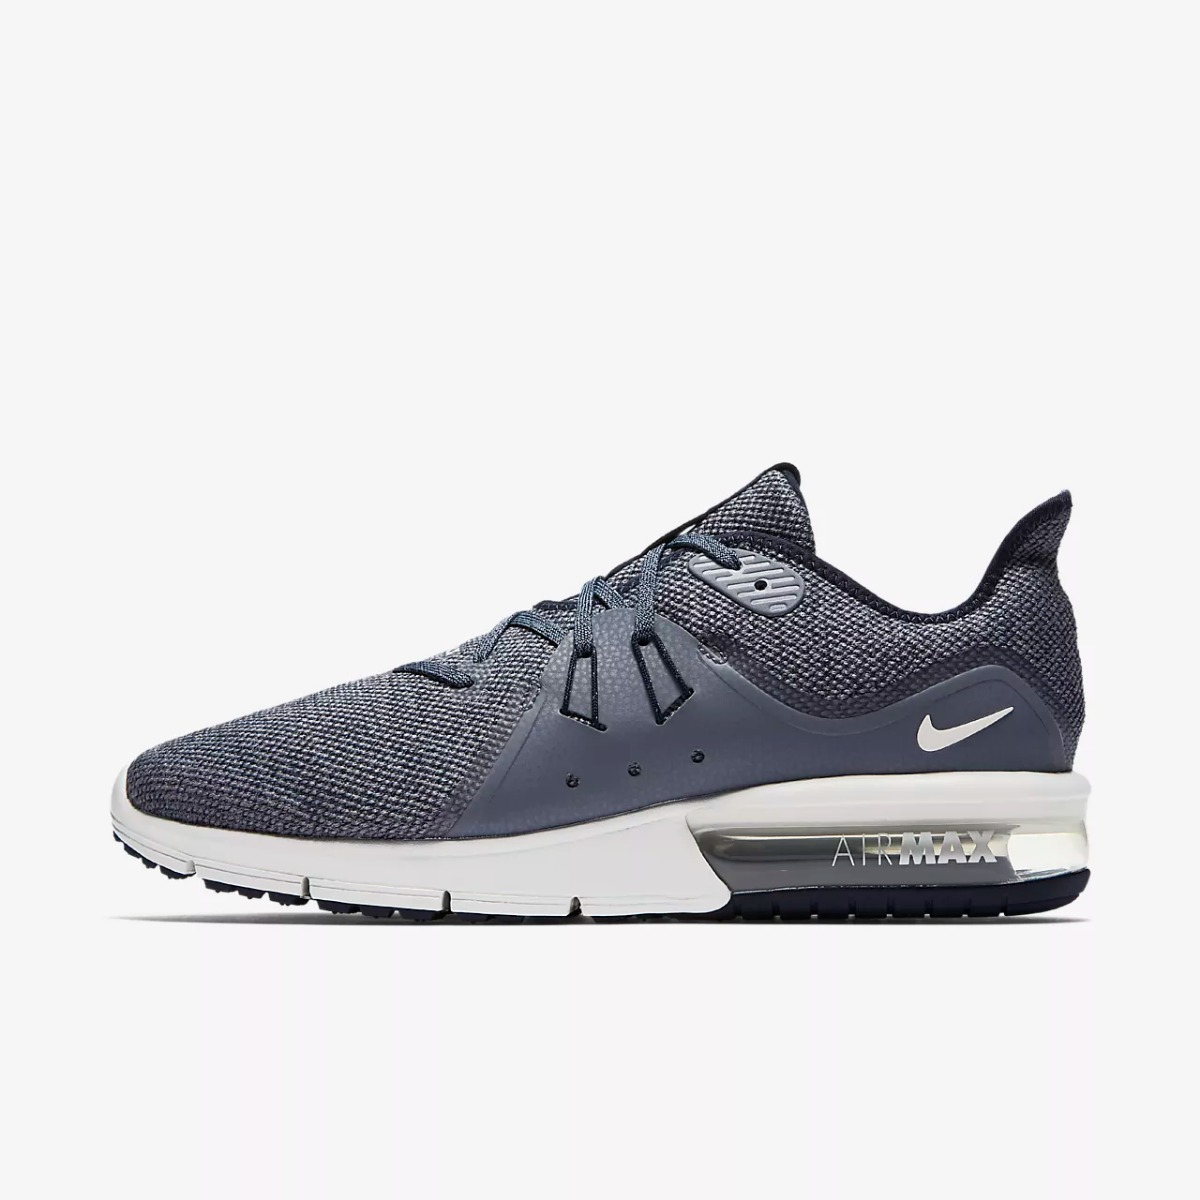 0f7113c708 ... czech zapatillas nike air max sequent 3 para hombre oferta. cargando  zoom. clearance prices